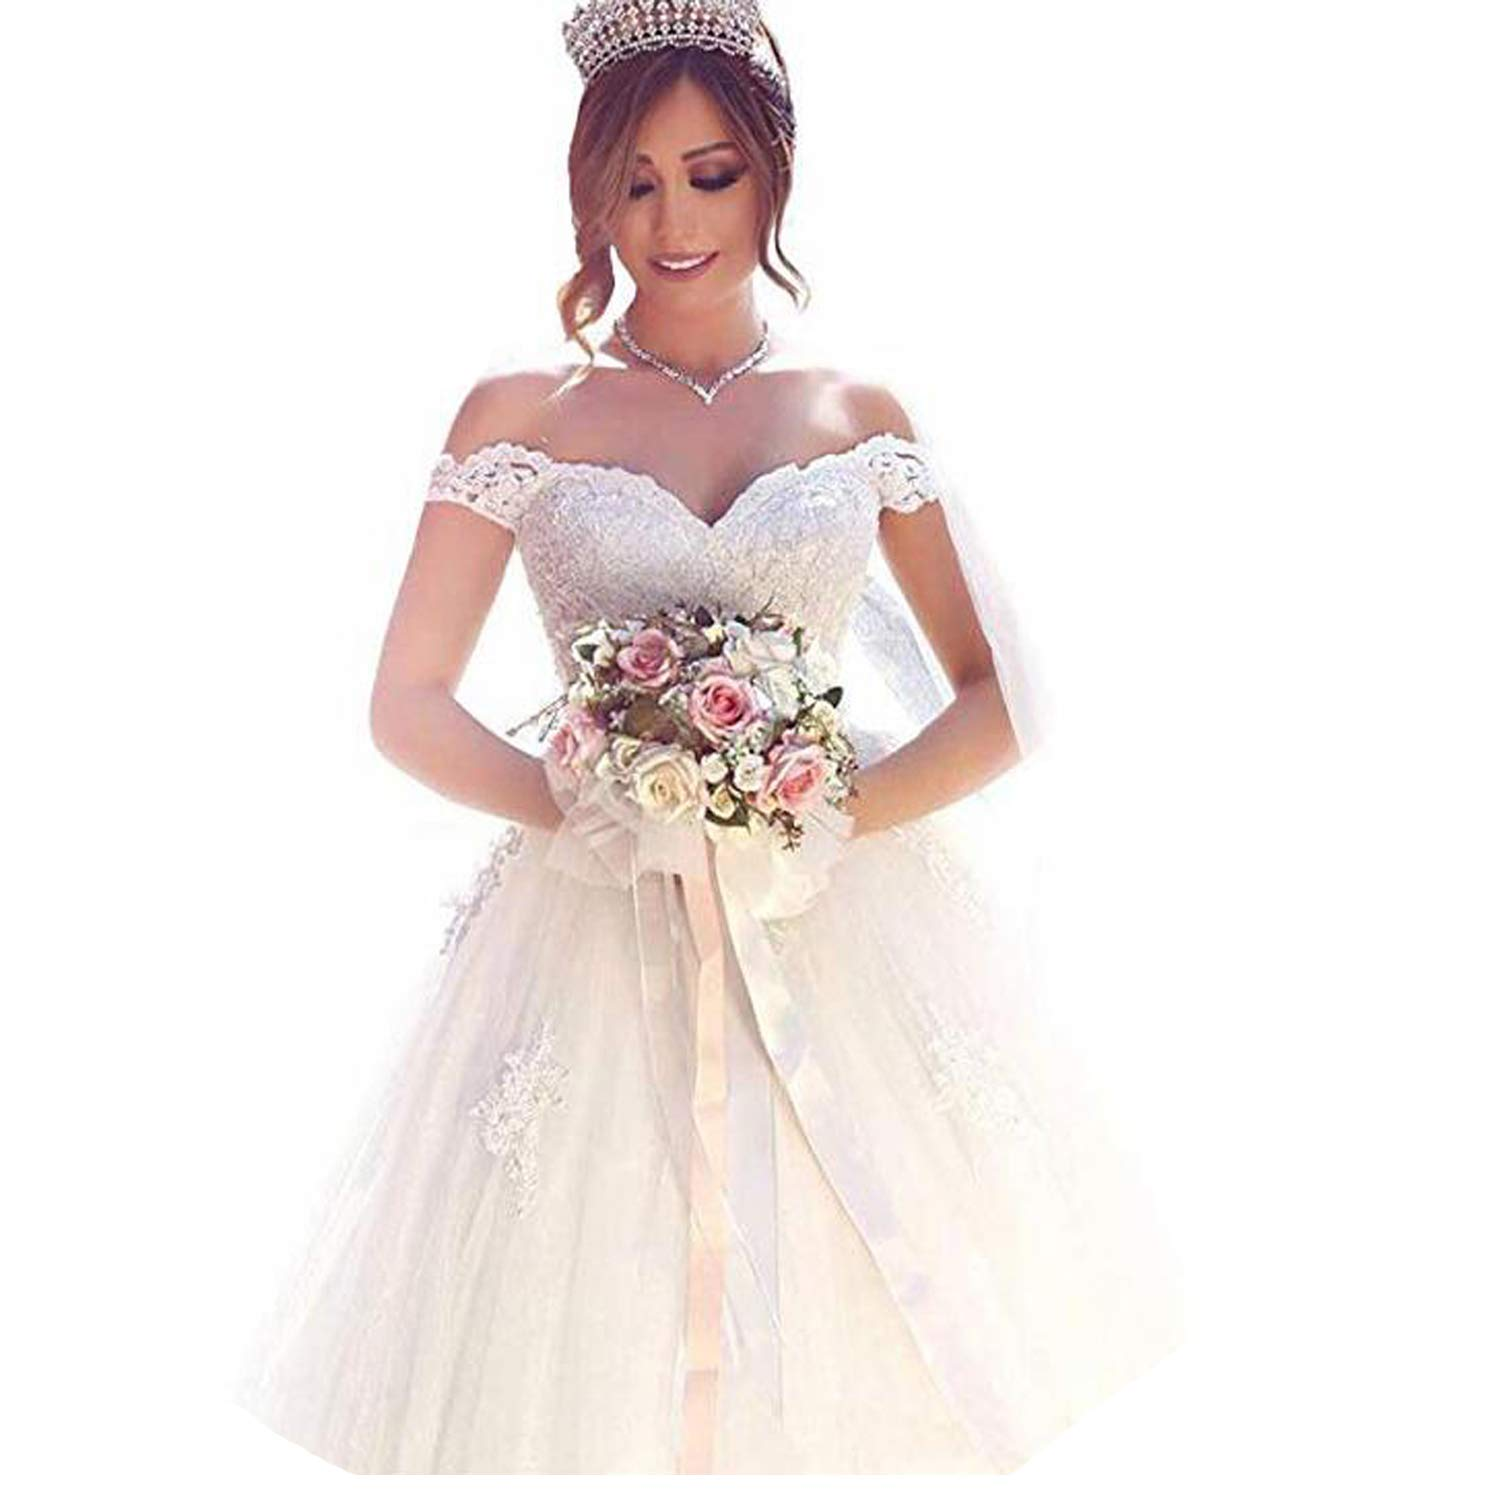 5ccc2ee7b Yuxin Elegant Sweetheart Lace Ball Gown Wedding Dresses 2018 Off Shoulder  Princess Bridal Gowns at Amazon Women's Clothing store: